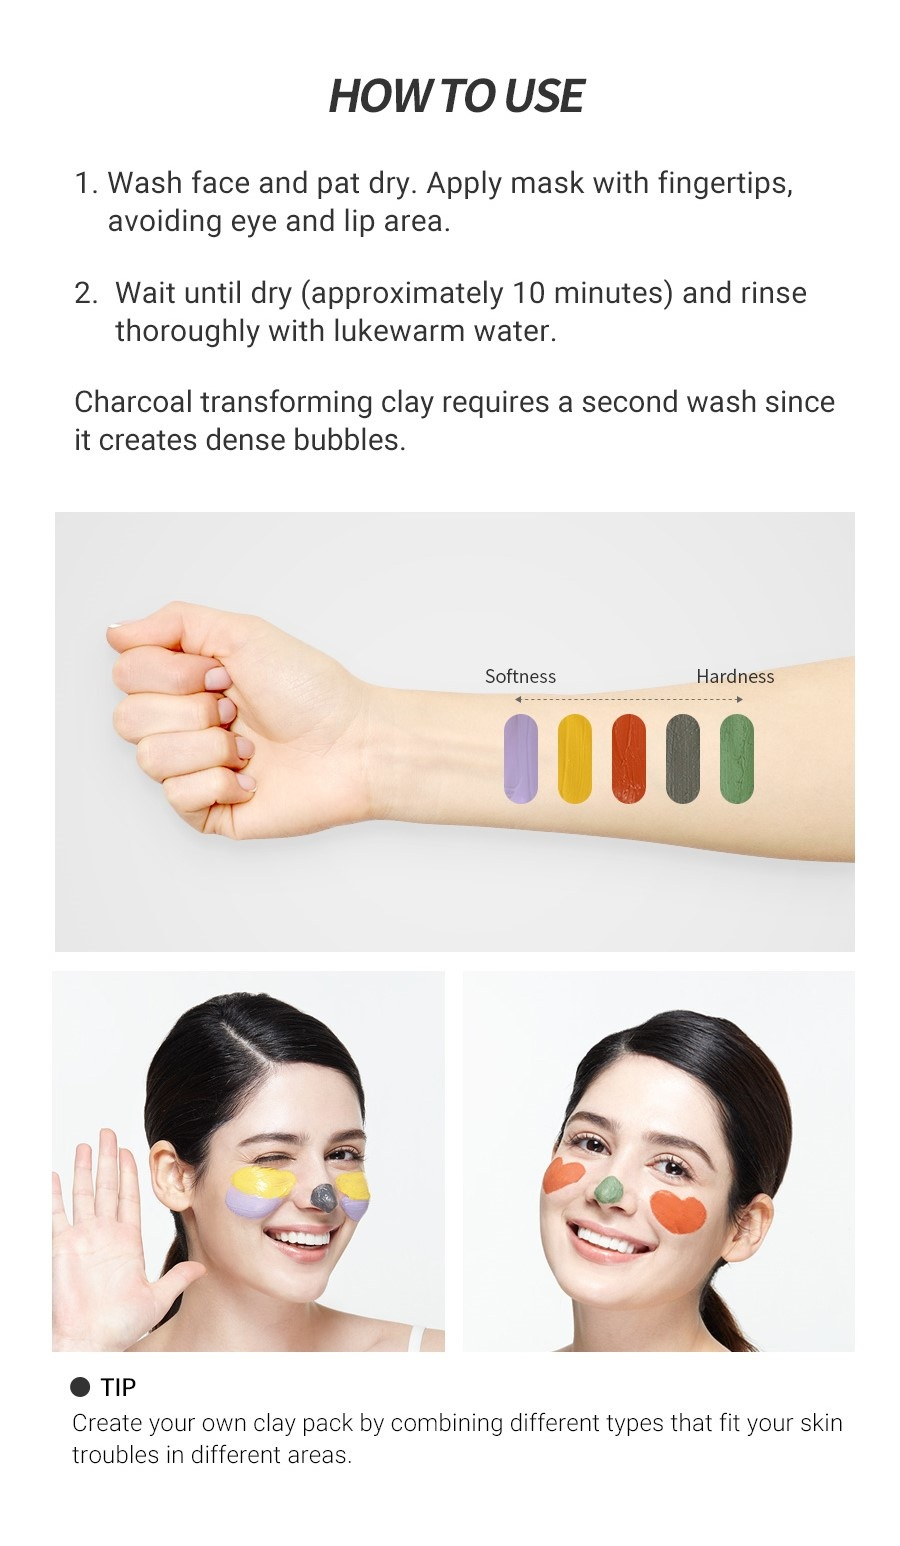 Clean & Fresh Clay Mask Pouch Pack - Charcoal Transforming-6